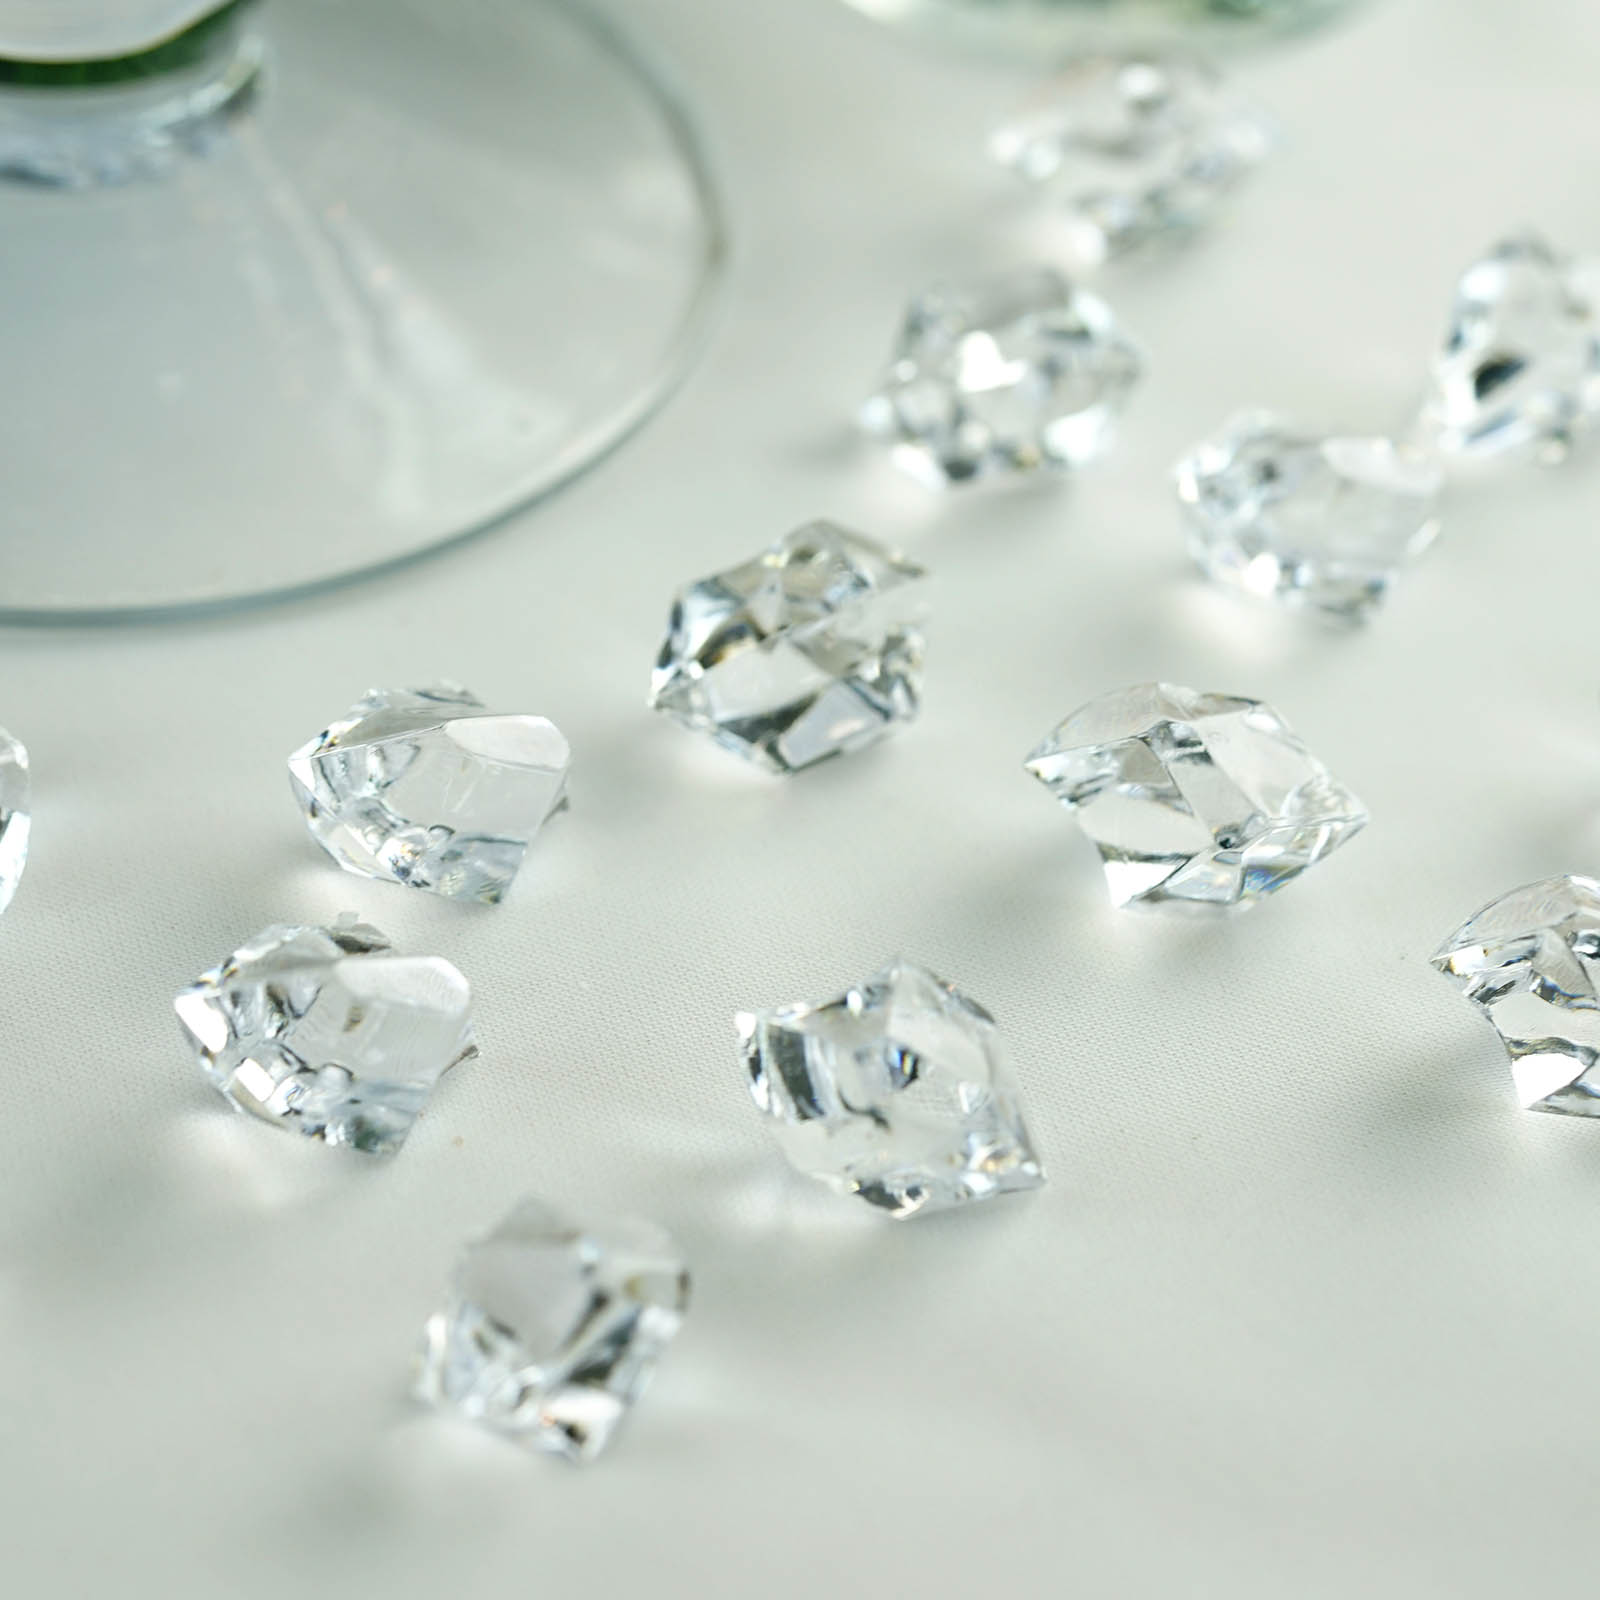 300 Acrylic Ice Crystal Like Pieces Wedding Centerpieces